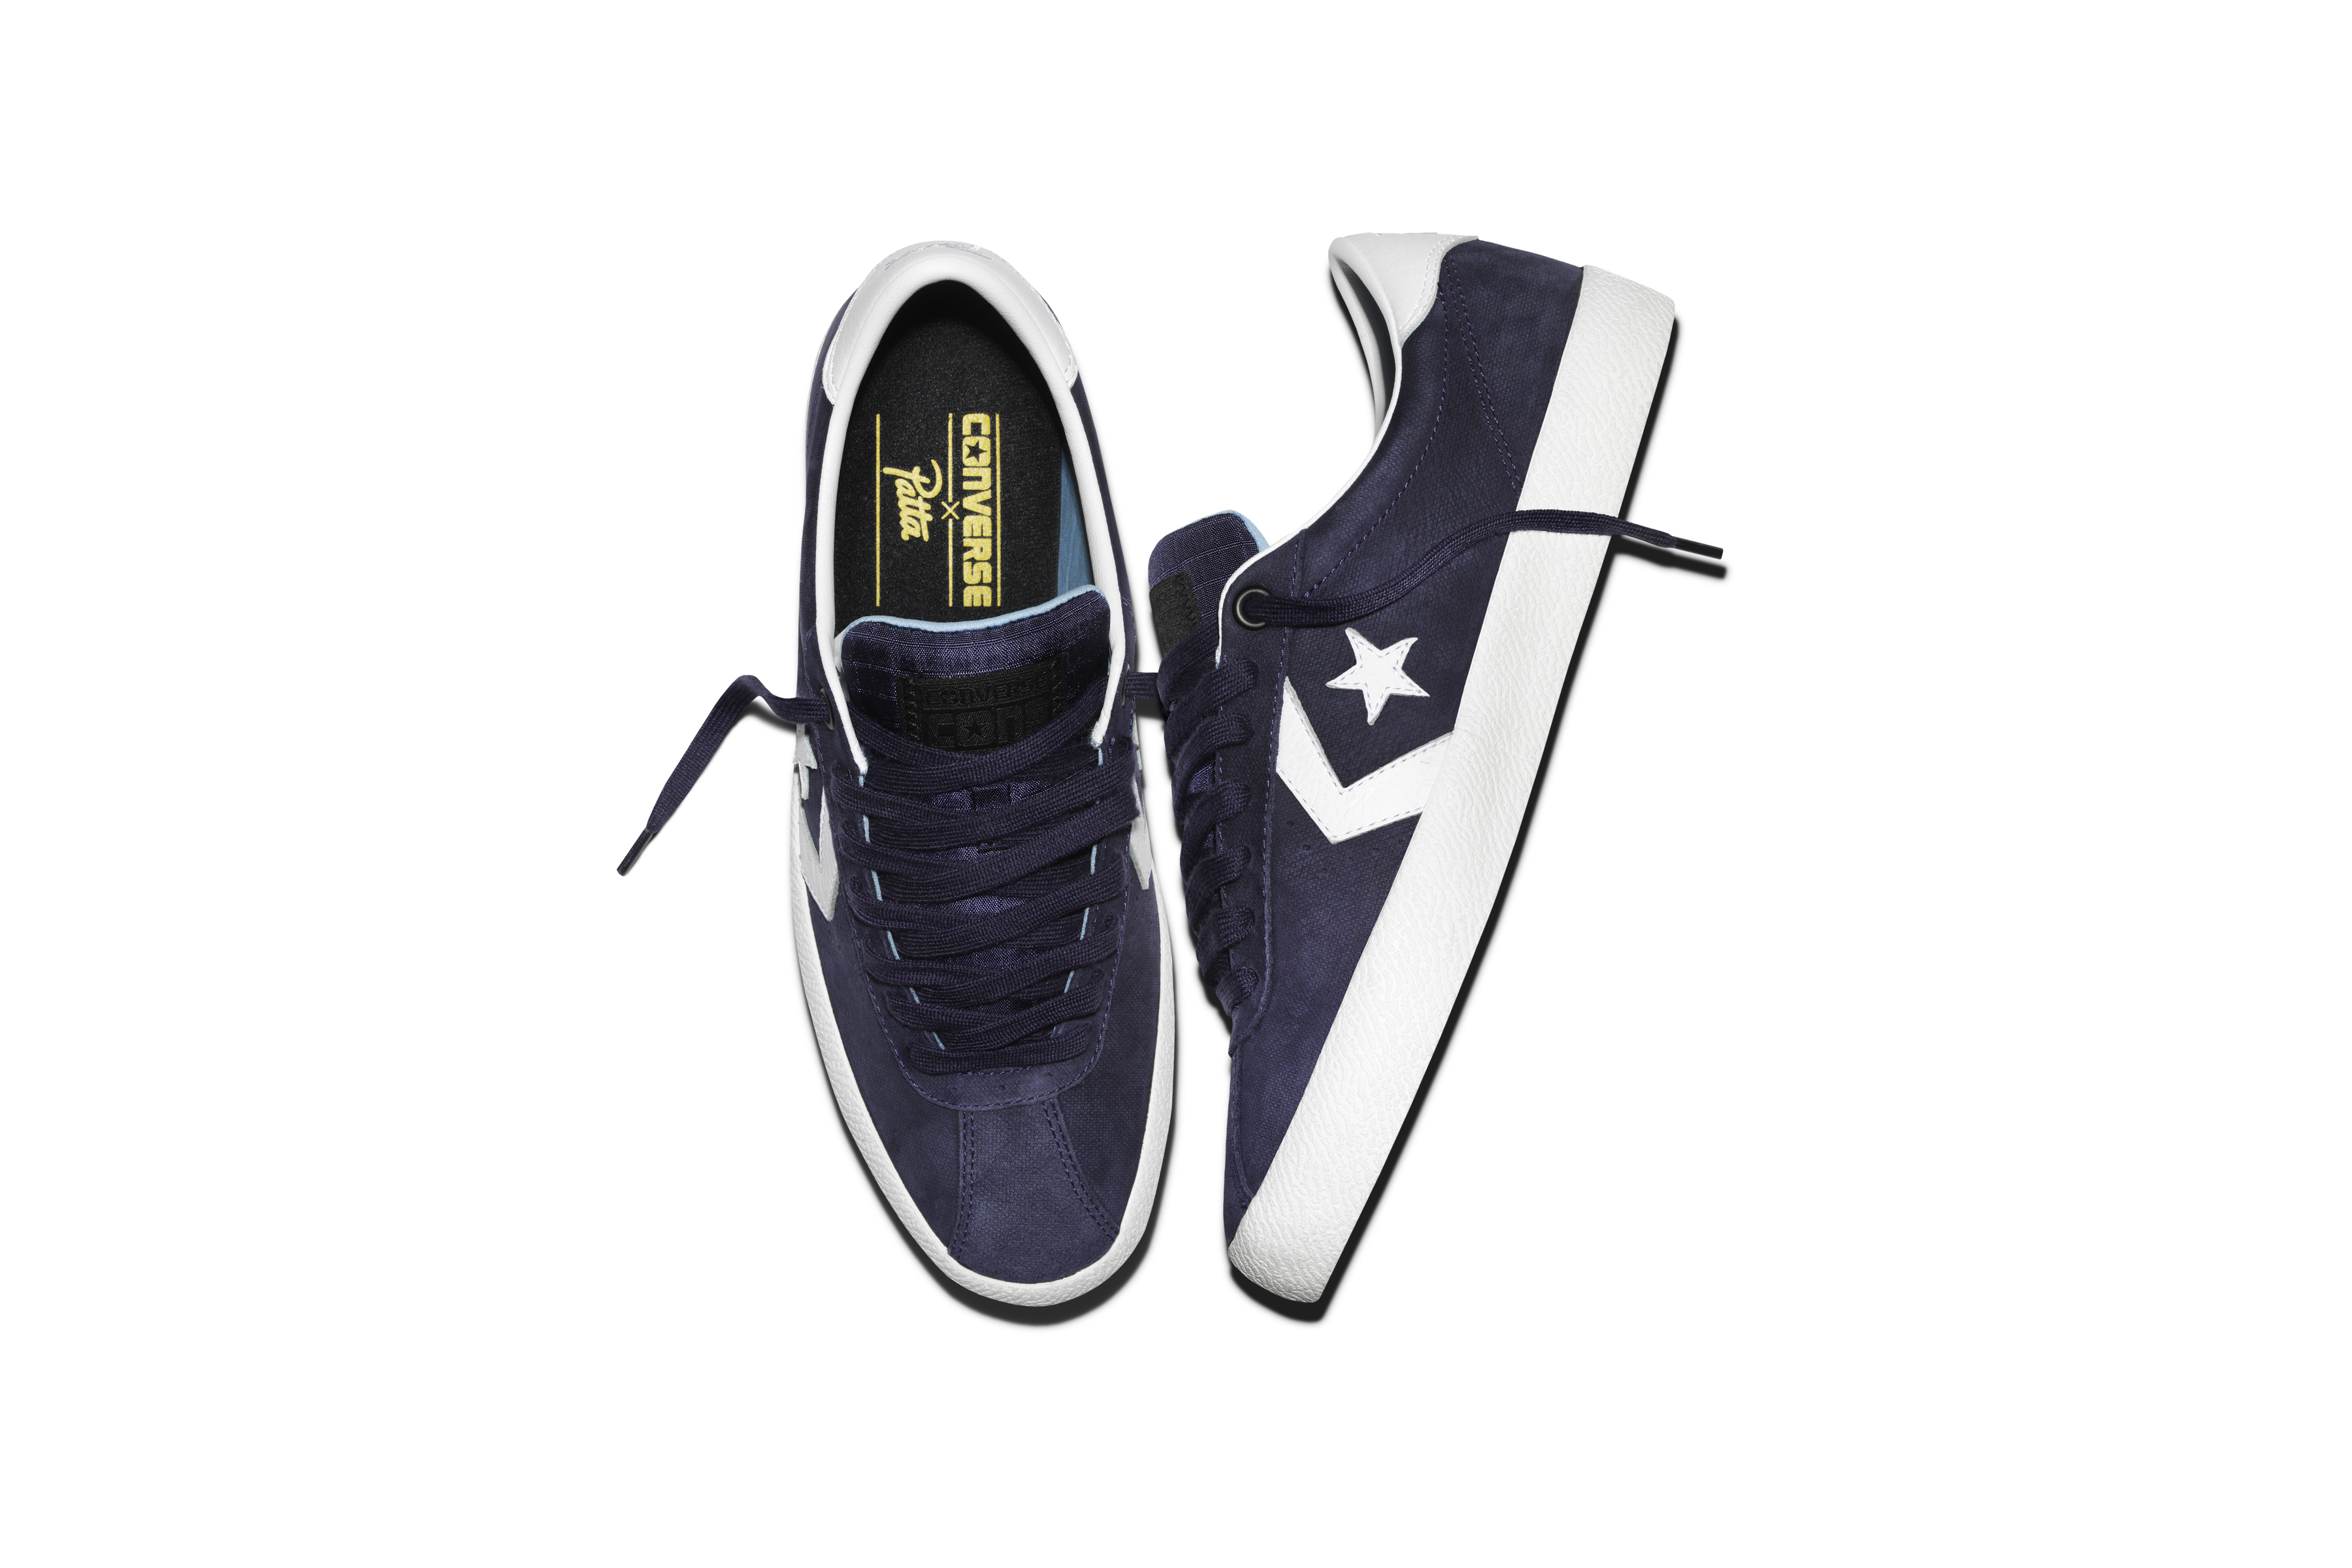 CONVERSE_BREAKPOINT-PINNACLE-PATTA